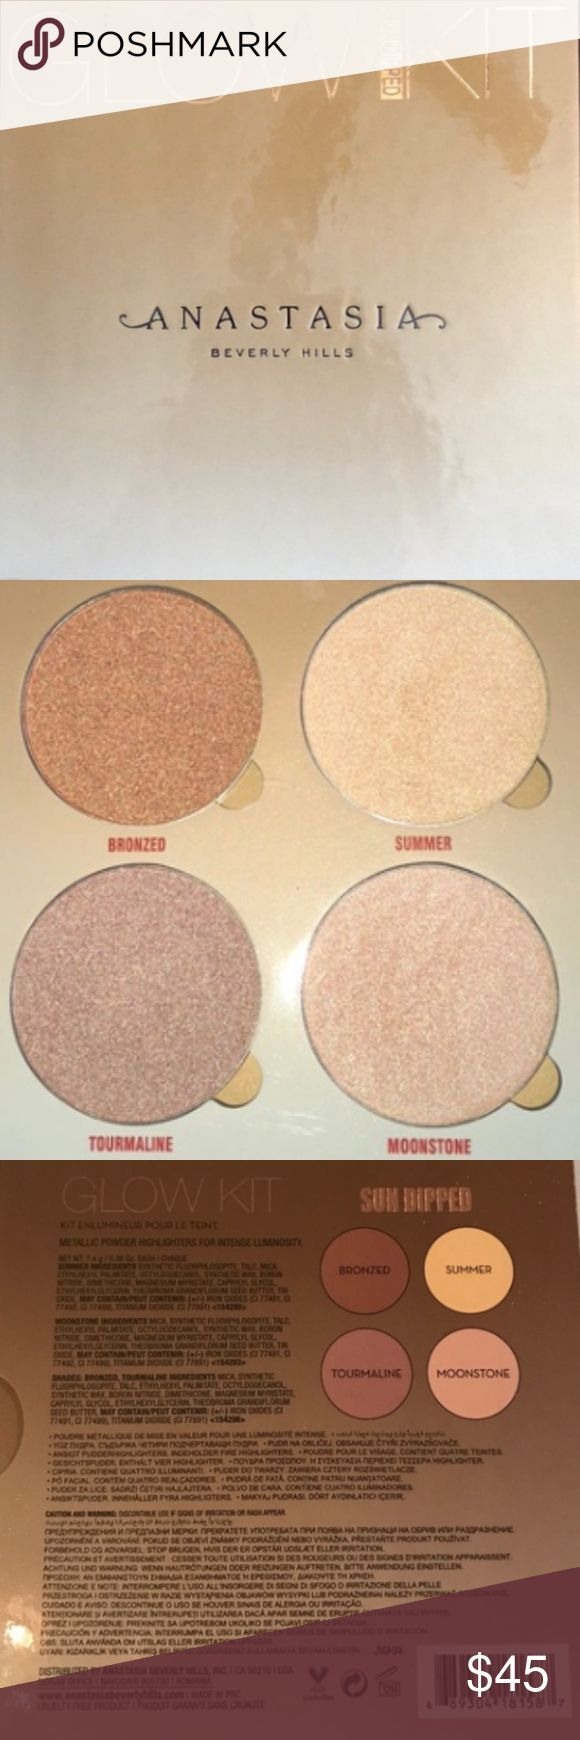 BNIB AUTHENTIC ANASTASIA BH SUN DIPPED GLOW KIT No trades. BNIB and GUARANTEED 100% AUTHENTIC ANASTASIA Beverly Hills Glow Kit in SUN DIPPED! :) This Sun Dipped Palettes includes the following four shades in untouched condition - colors are covered with plastic in palette:  Bronzed (amber w/ penny metal finish) Tourmaline (warm taupe w/ a rose gold finish) Mooonstone (radiant quartz w/ a pearl finish) and Summer (luminous sand w/ a white gold finish). Anastasia Beverly Hills Makeup Eyeshadow